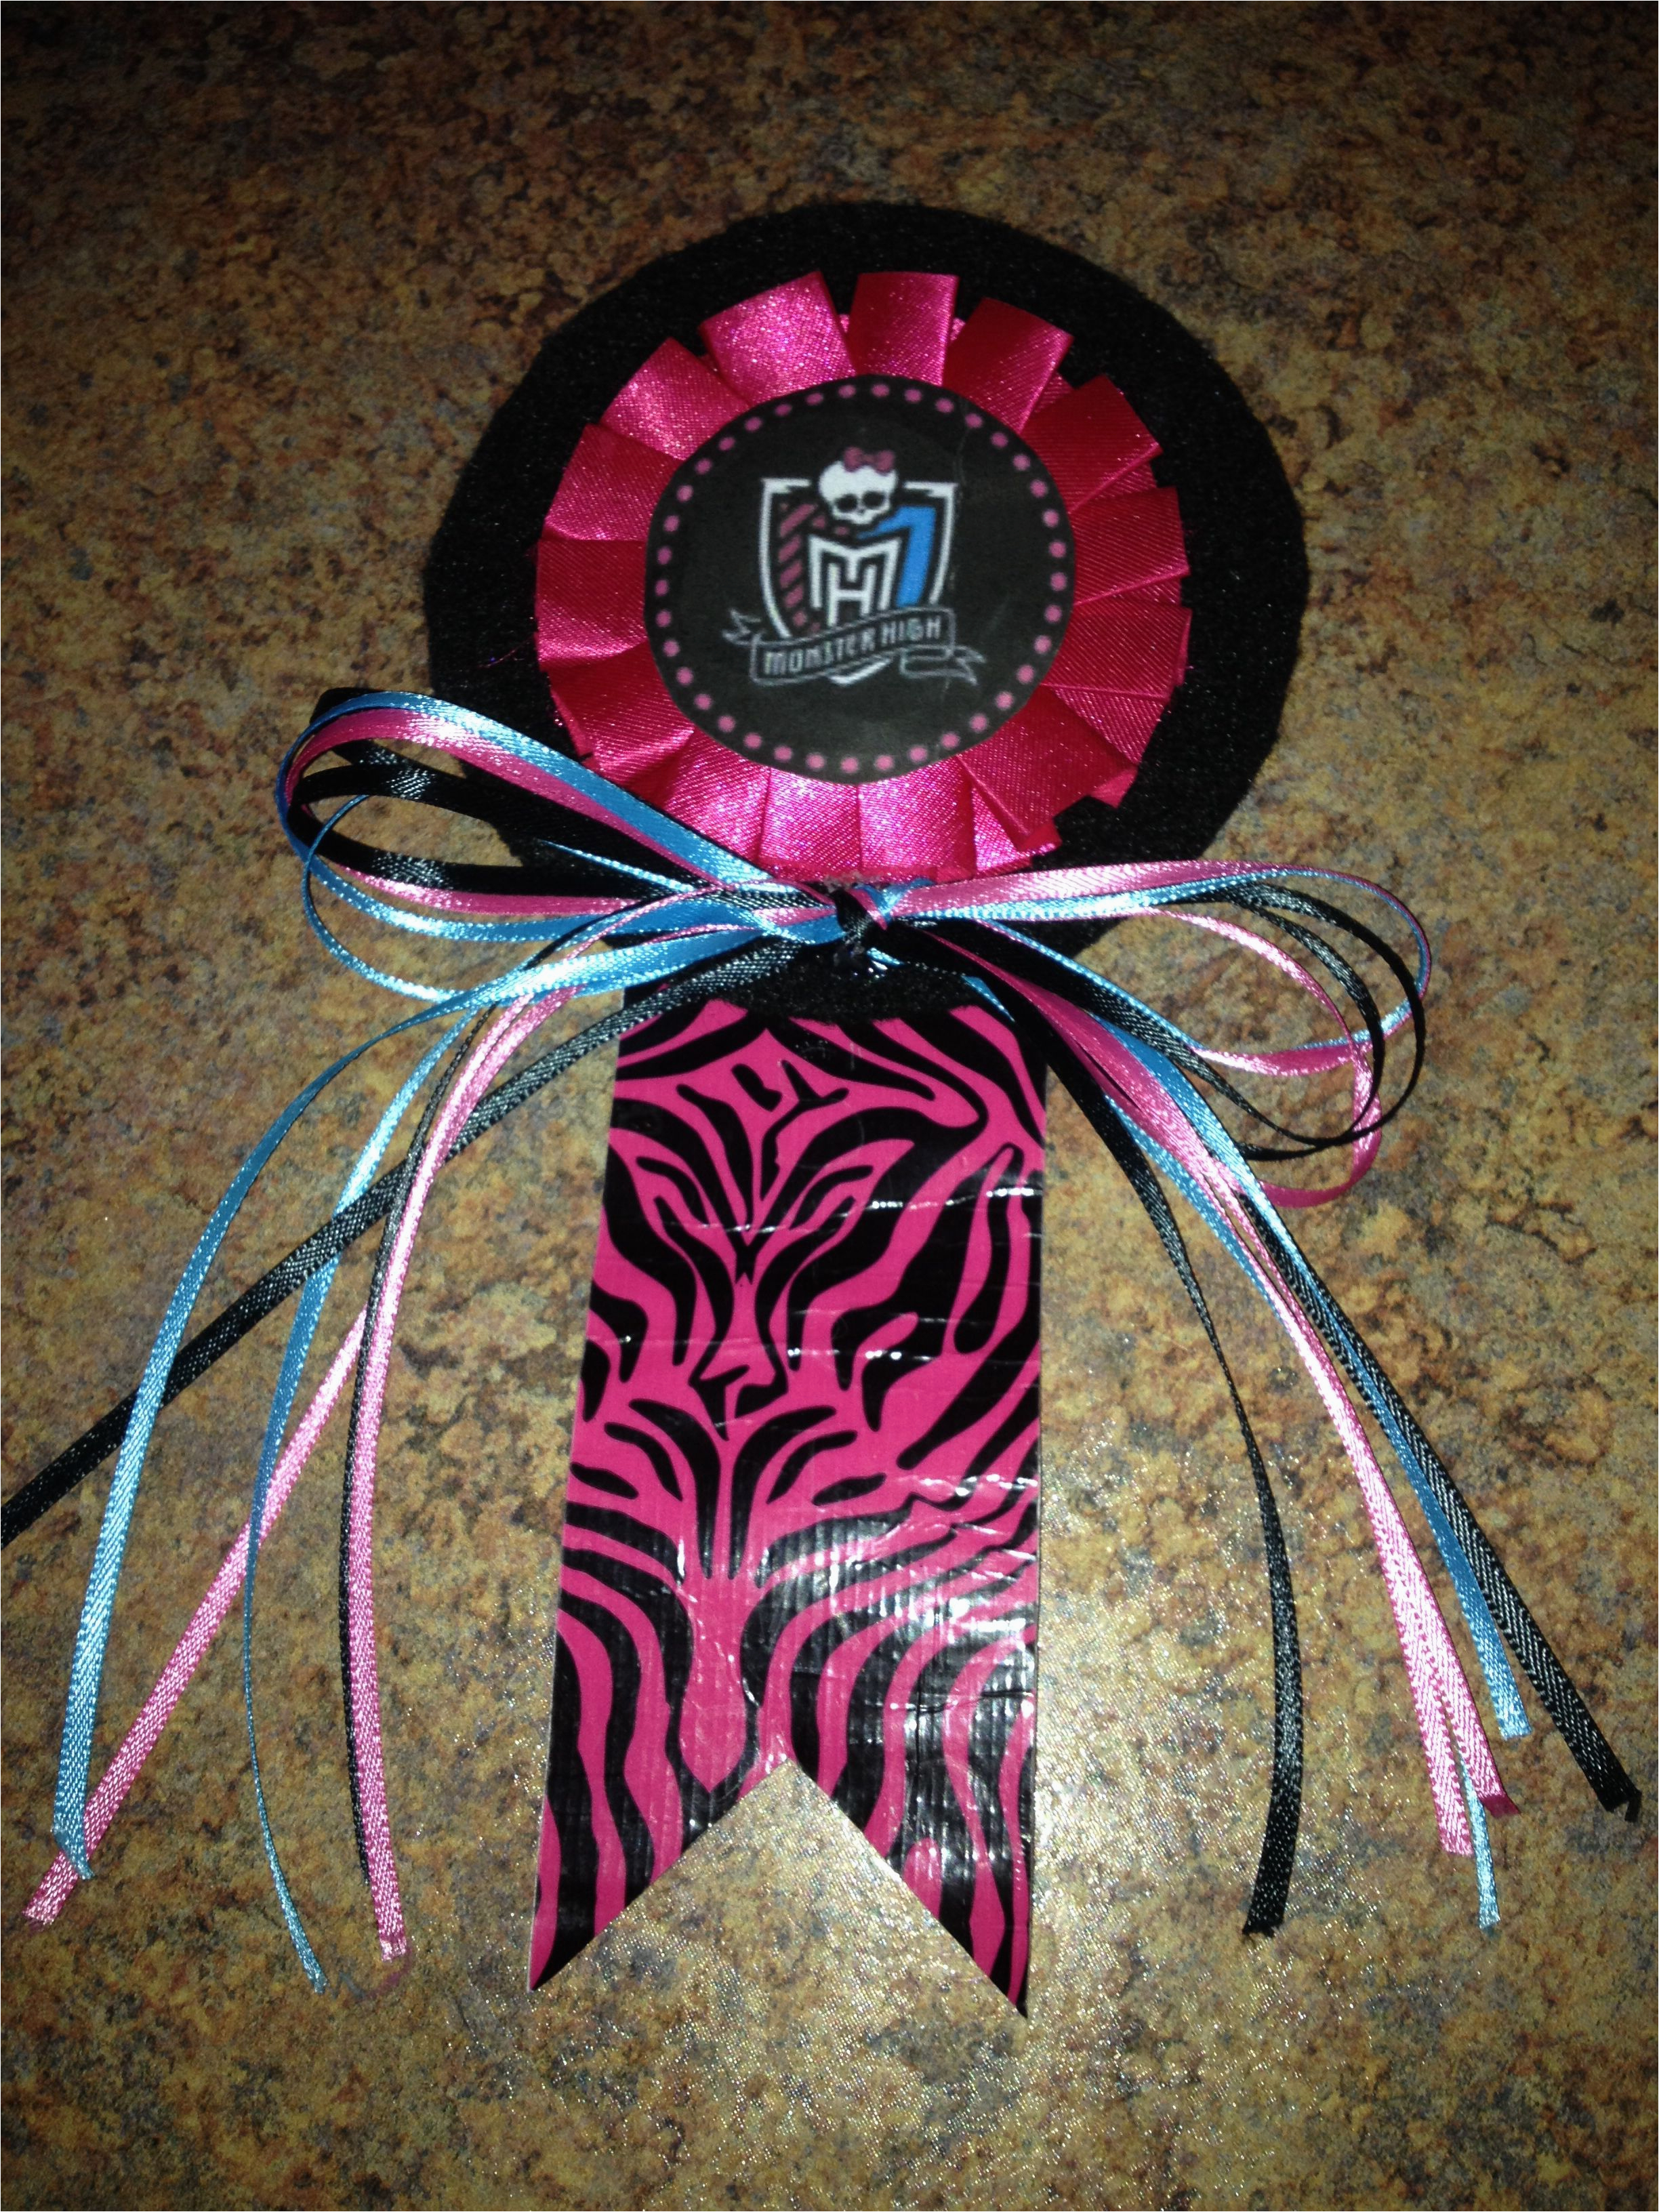 Birthday Girl Pin Dollar Tree Monster High Pin Made for My Special Birthday Girl Bought